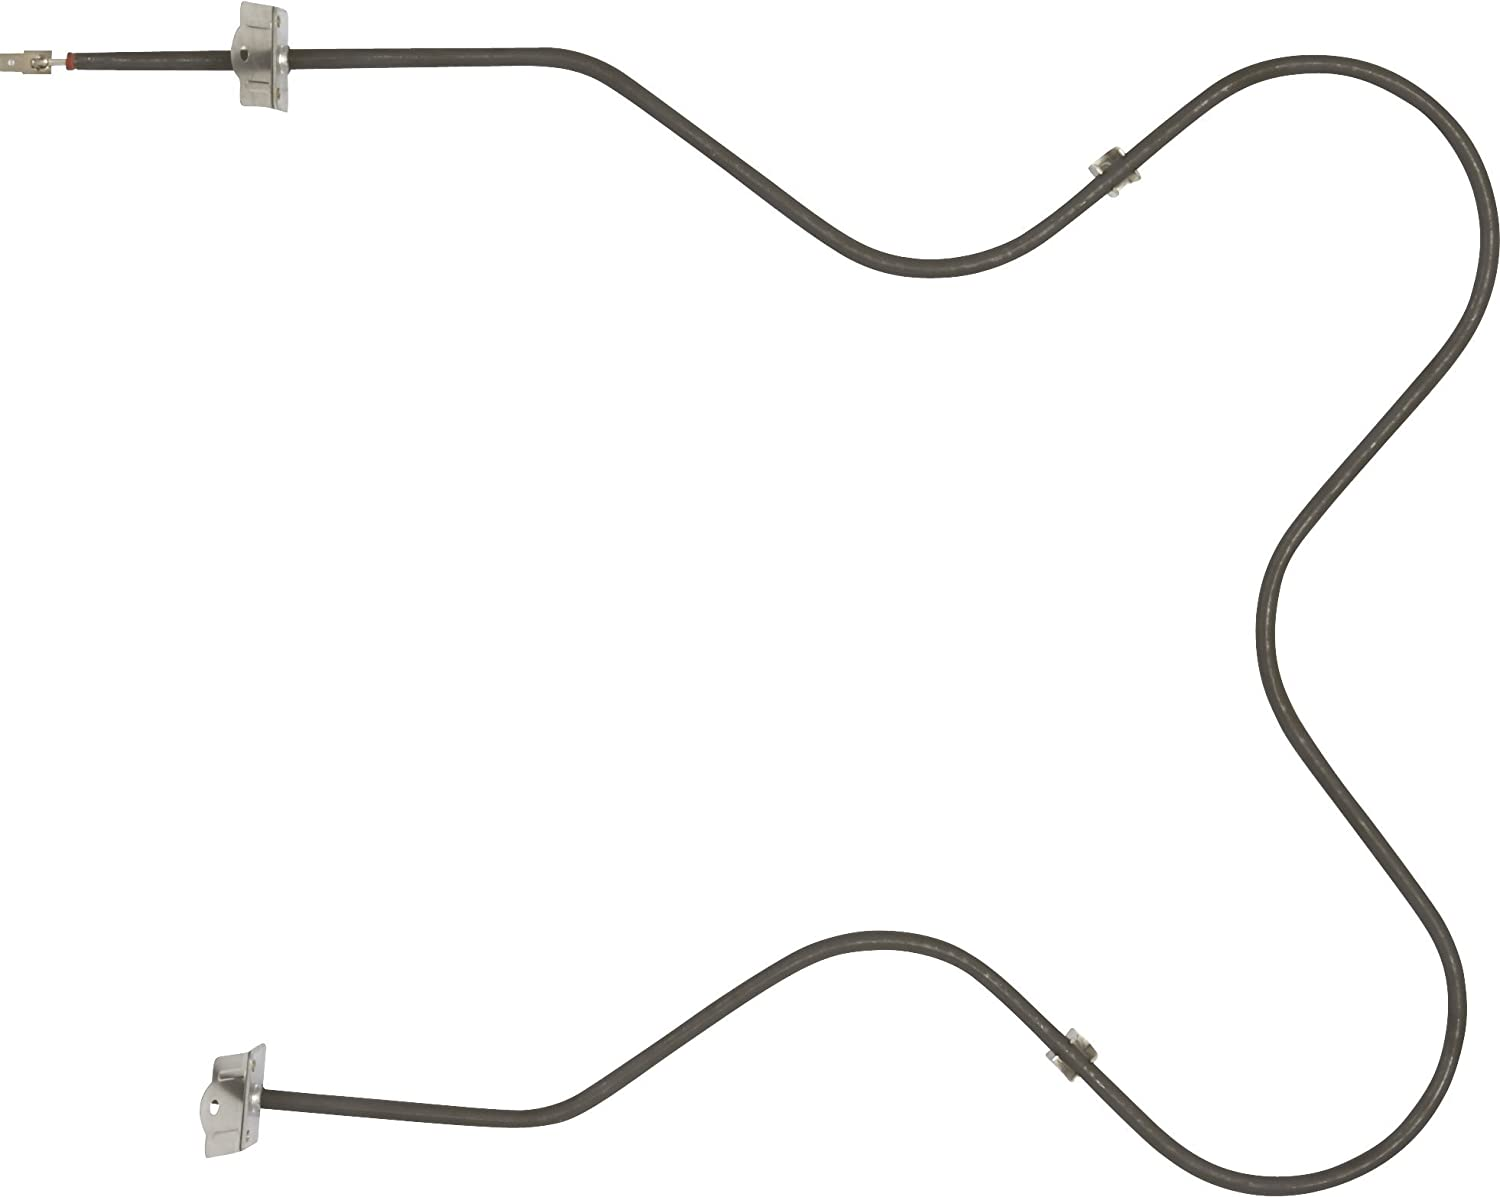 Whirlpool 74004105 Bake Element